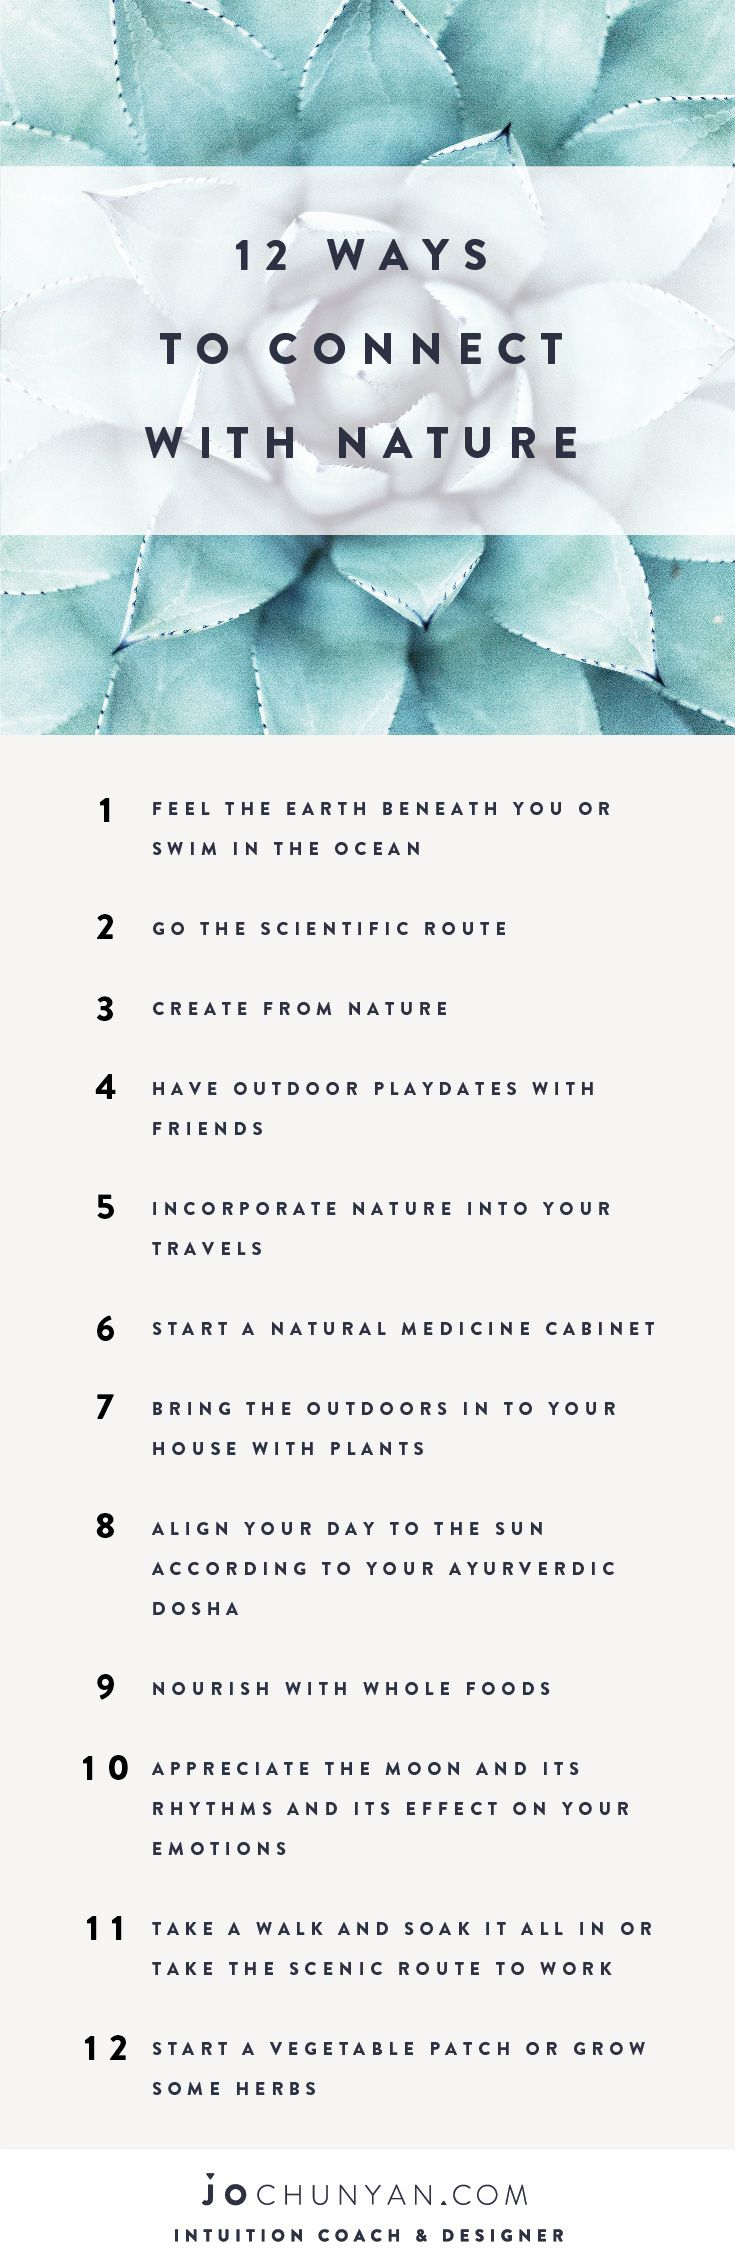 FREE PRINTABLE LIST :: REMINDERS :: 12 Ways To Connect With Nature. Click on the link for the full blog post.